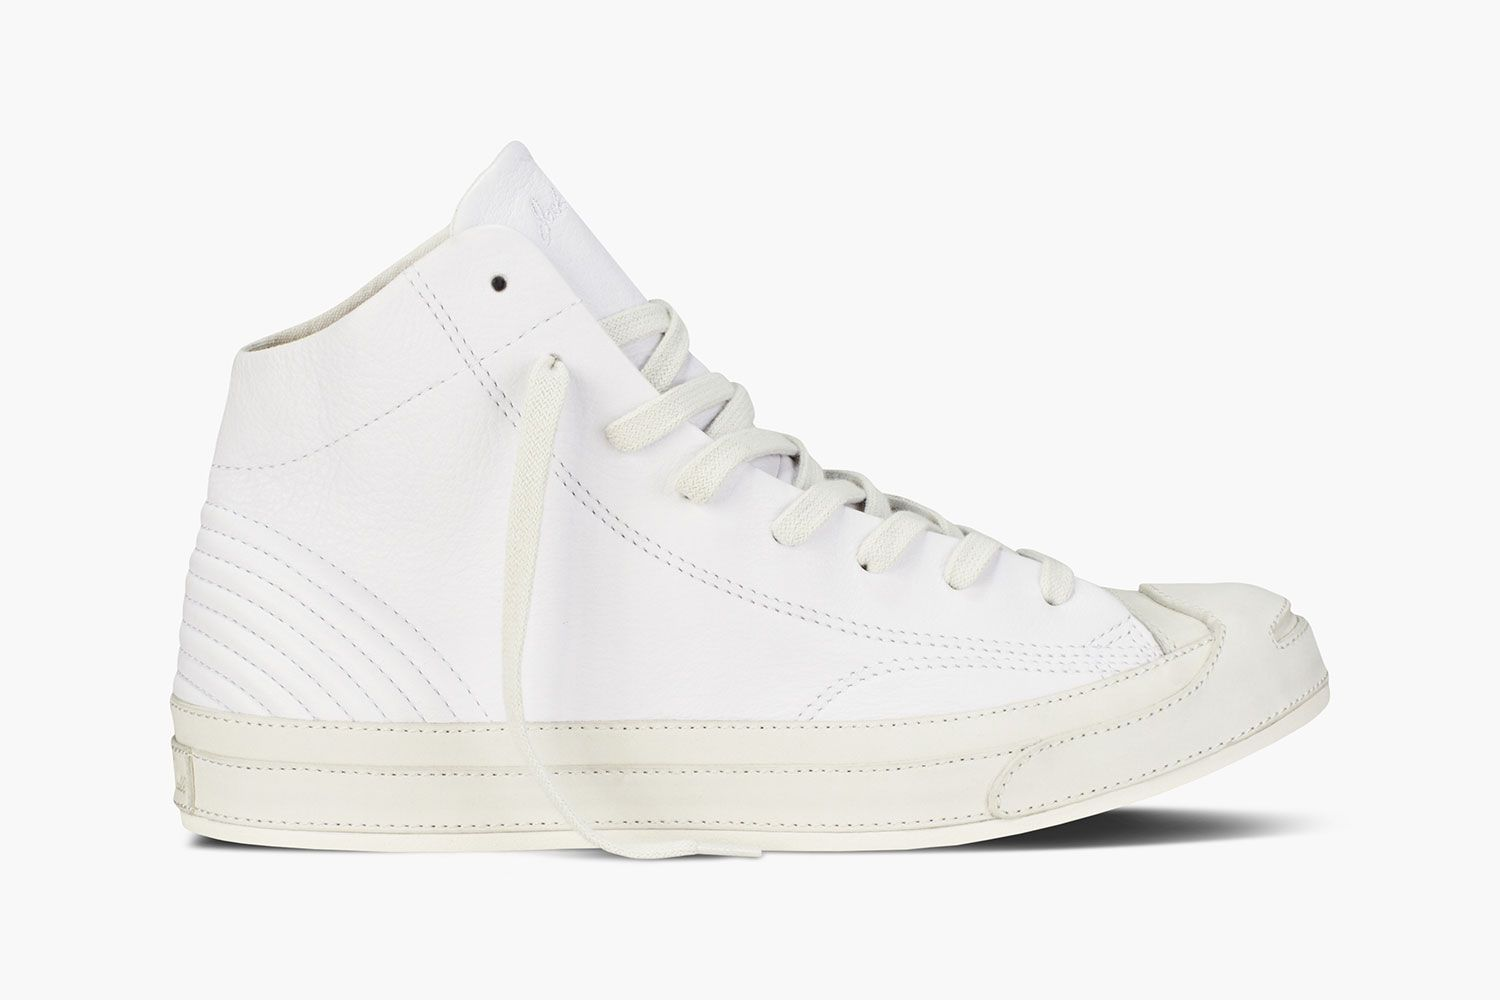 Converse Holiday 2014 Jack Purcell Moto Jacket Sneaker Collection ... 069c4db9bd6a